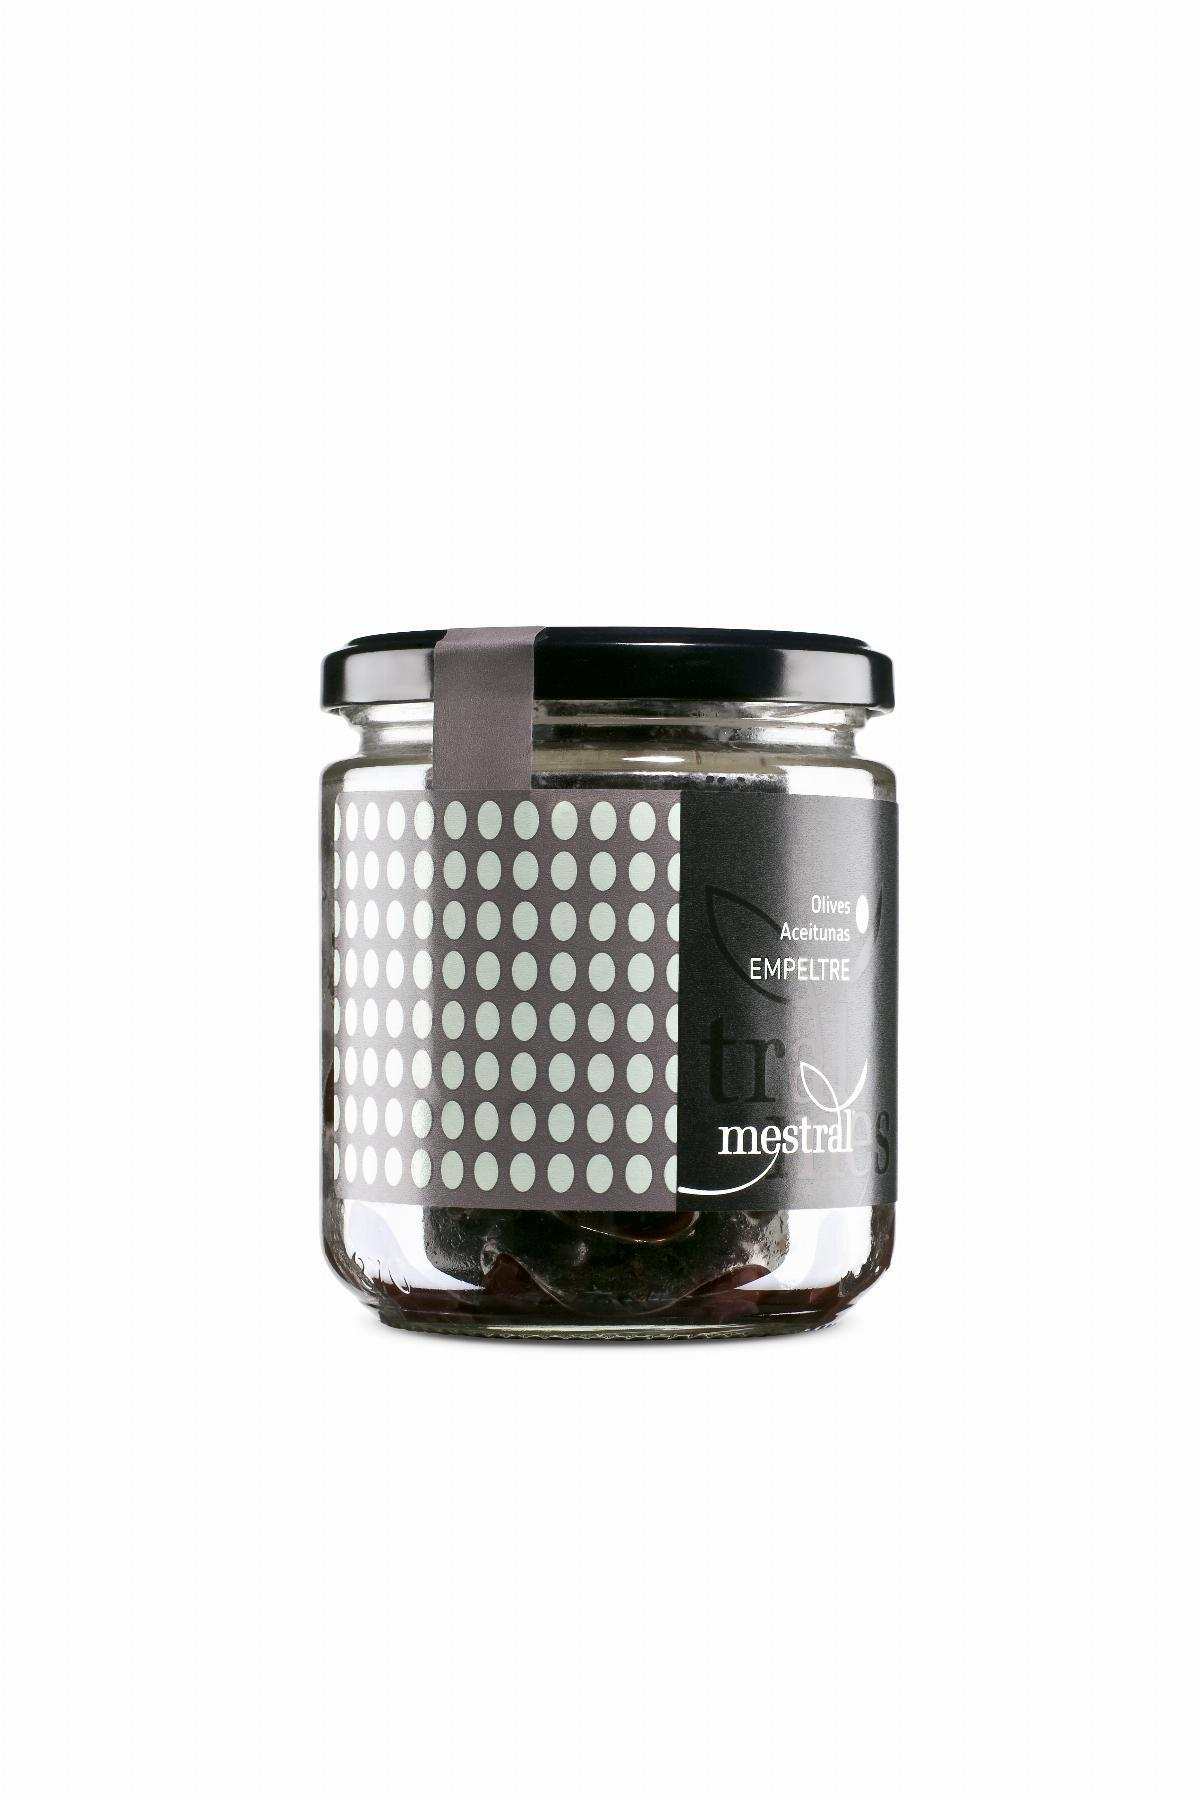 Olives Empeltre Mestral, pot transparent 200g, CAT-ES-EN-FR-DE